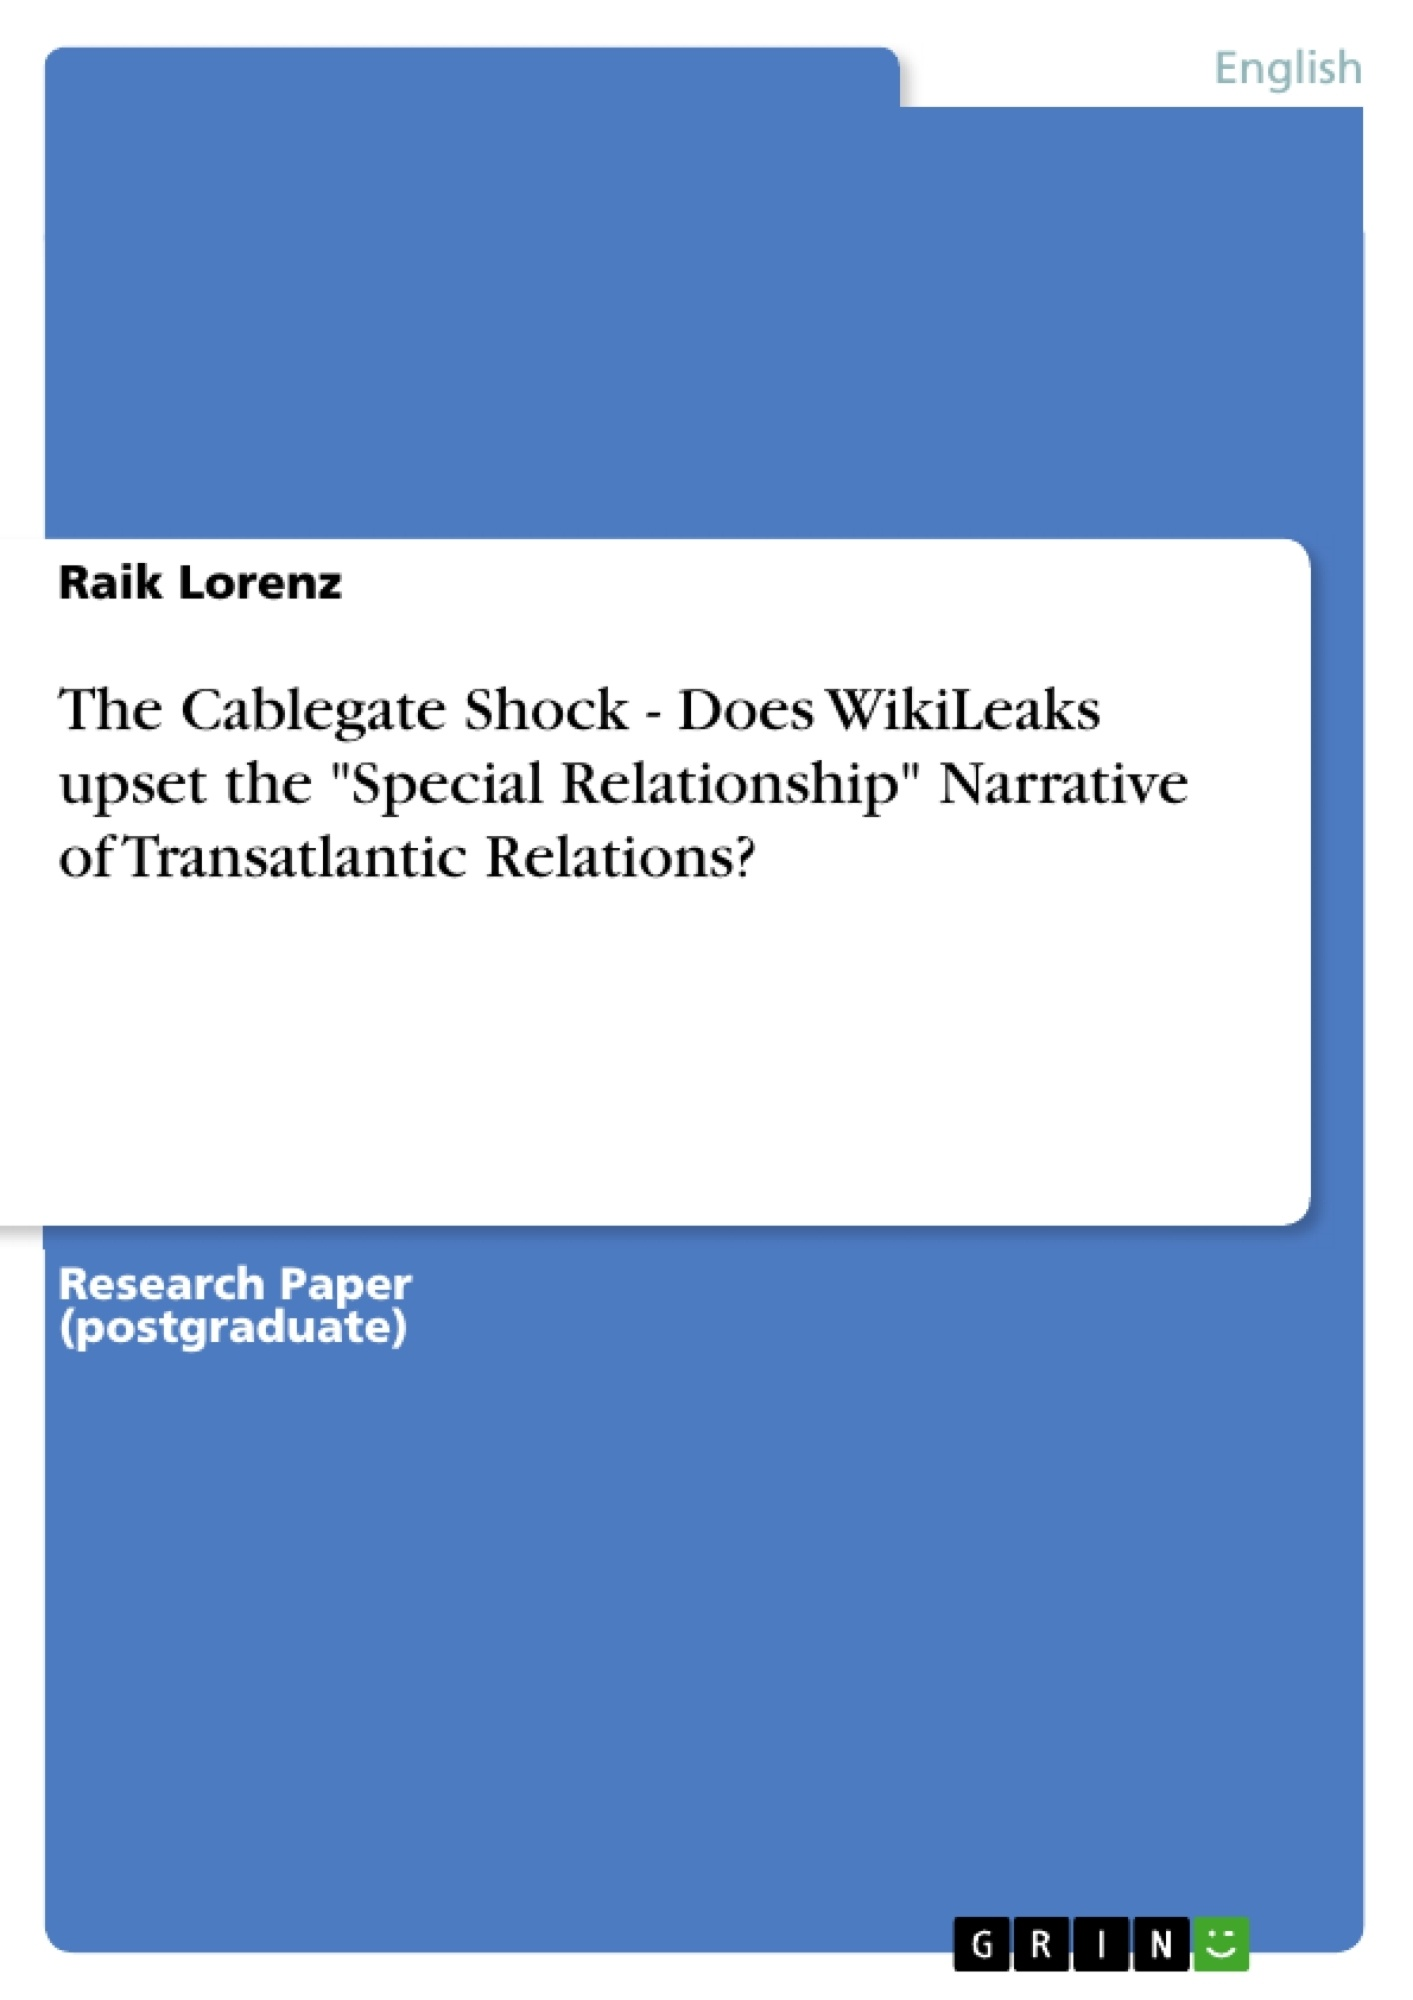 Term paper on whistleblowing